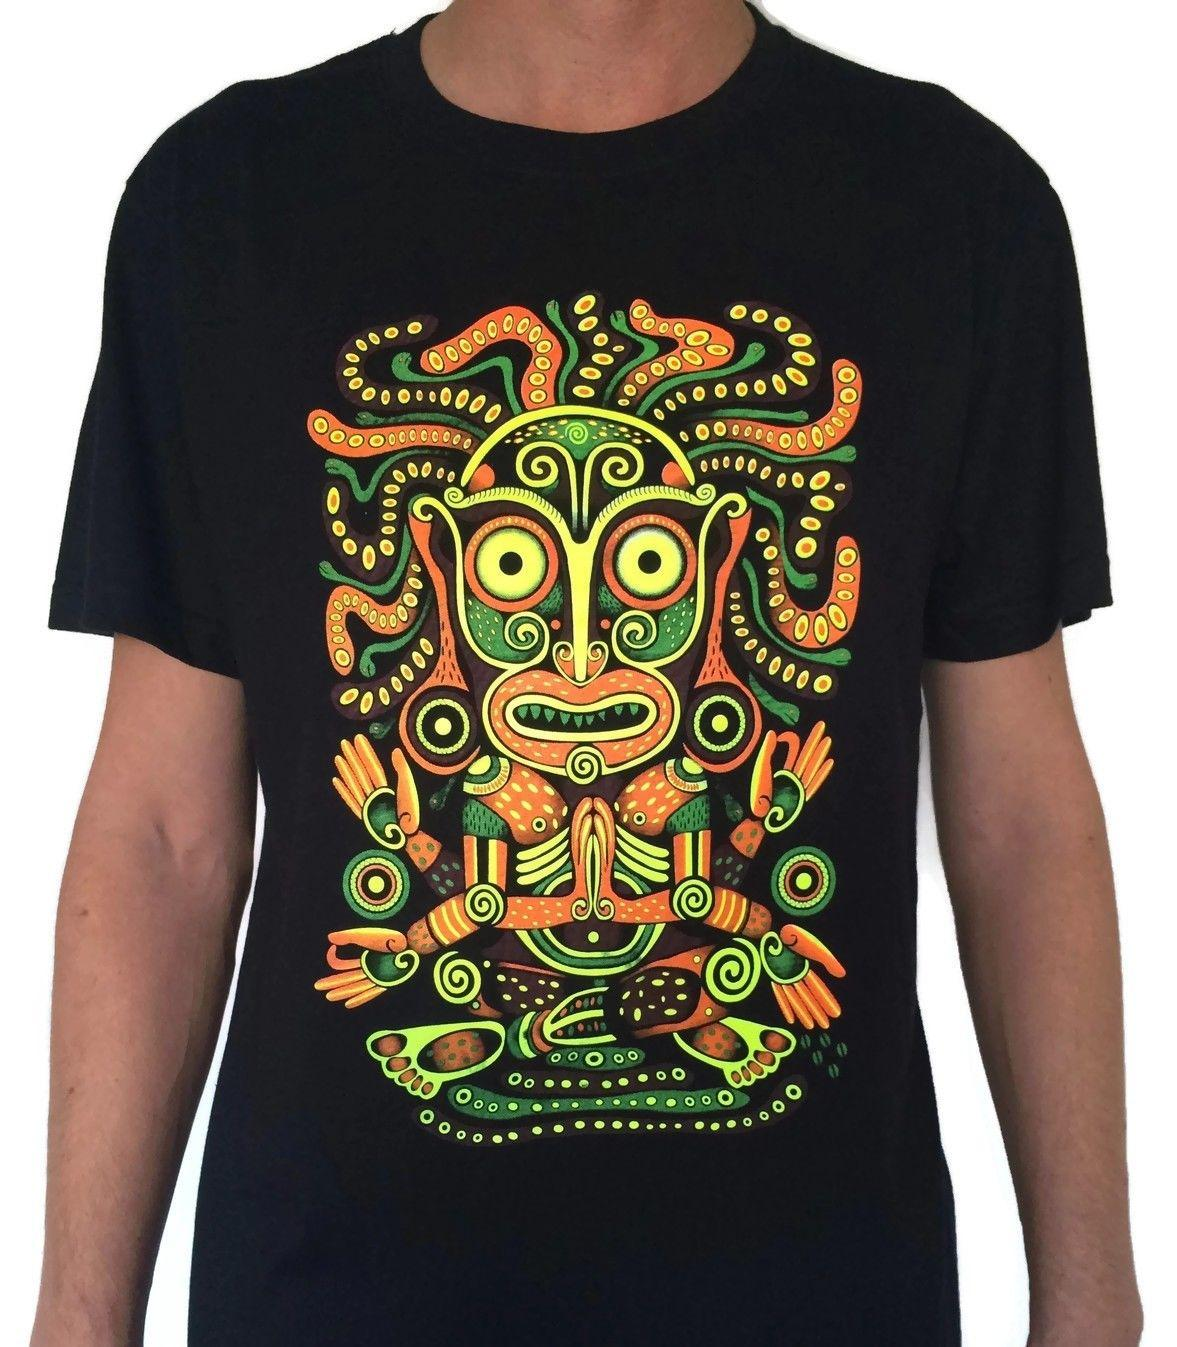 e39f778d99a IDOL Men S T Shirt Glow UV Blacklight Neon Psychedelic Art Goa Festival  Trance Newest Top Tees Fashion Style Men Tee 100% Cotton Classic Silly T  Shirts ...